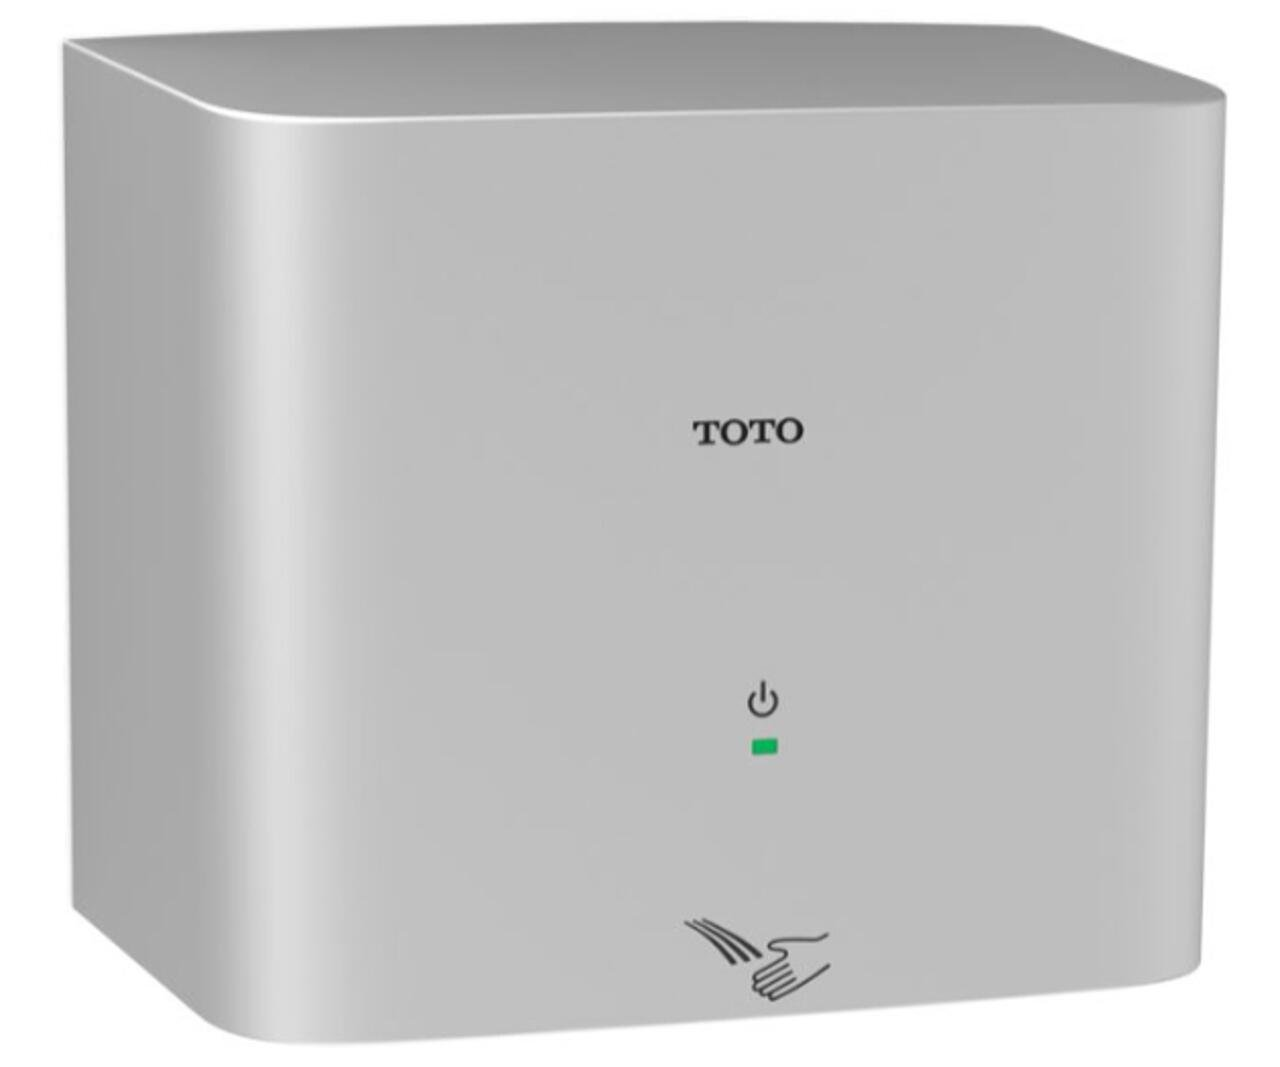 Toto HDR130#SV Clean Dry Hand Dryer, 390-watt by TOTO